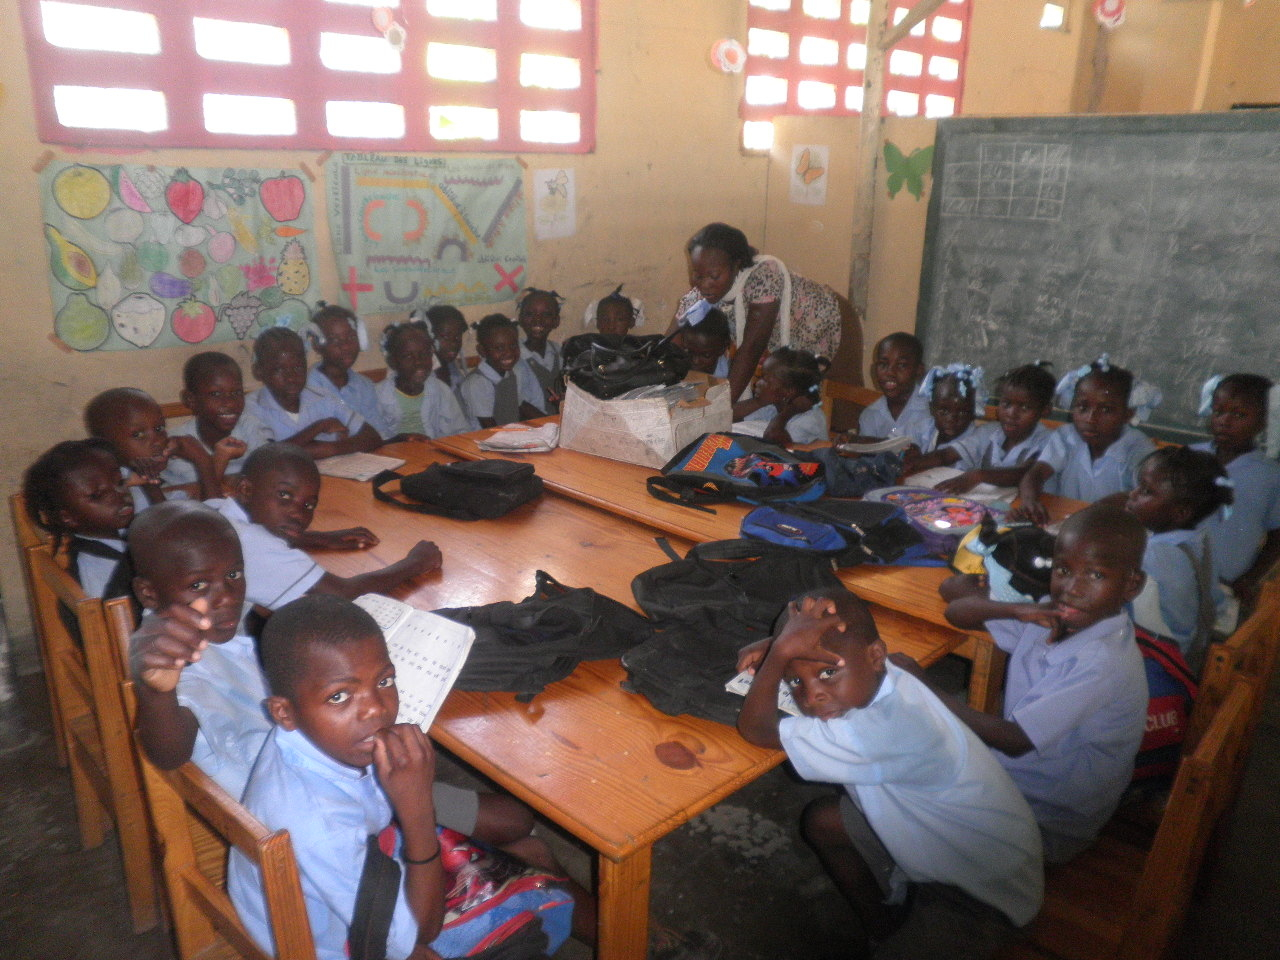 Reports On Support Education In Haiti With Books For